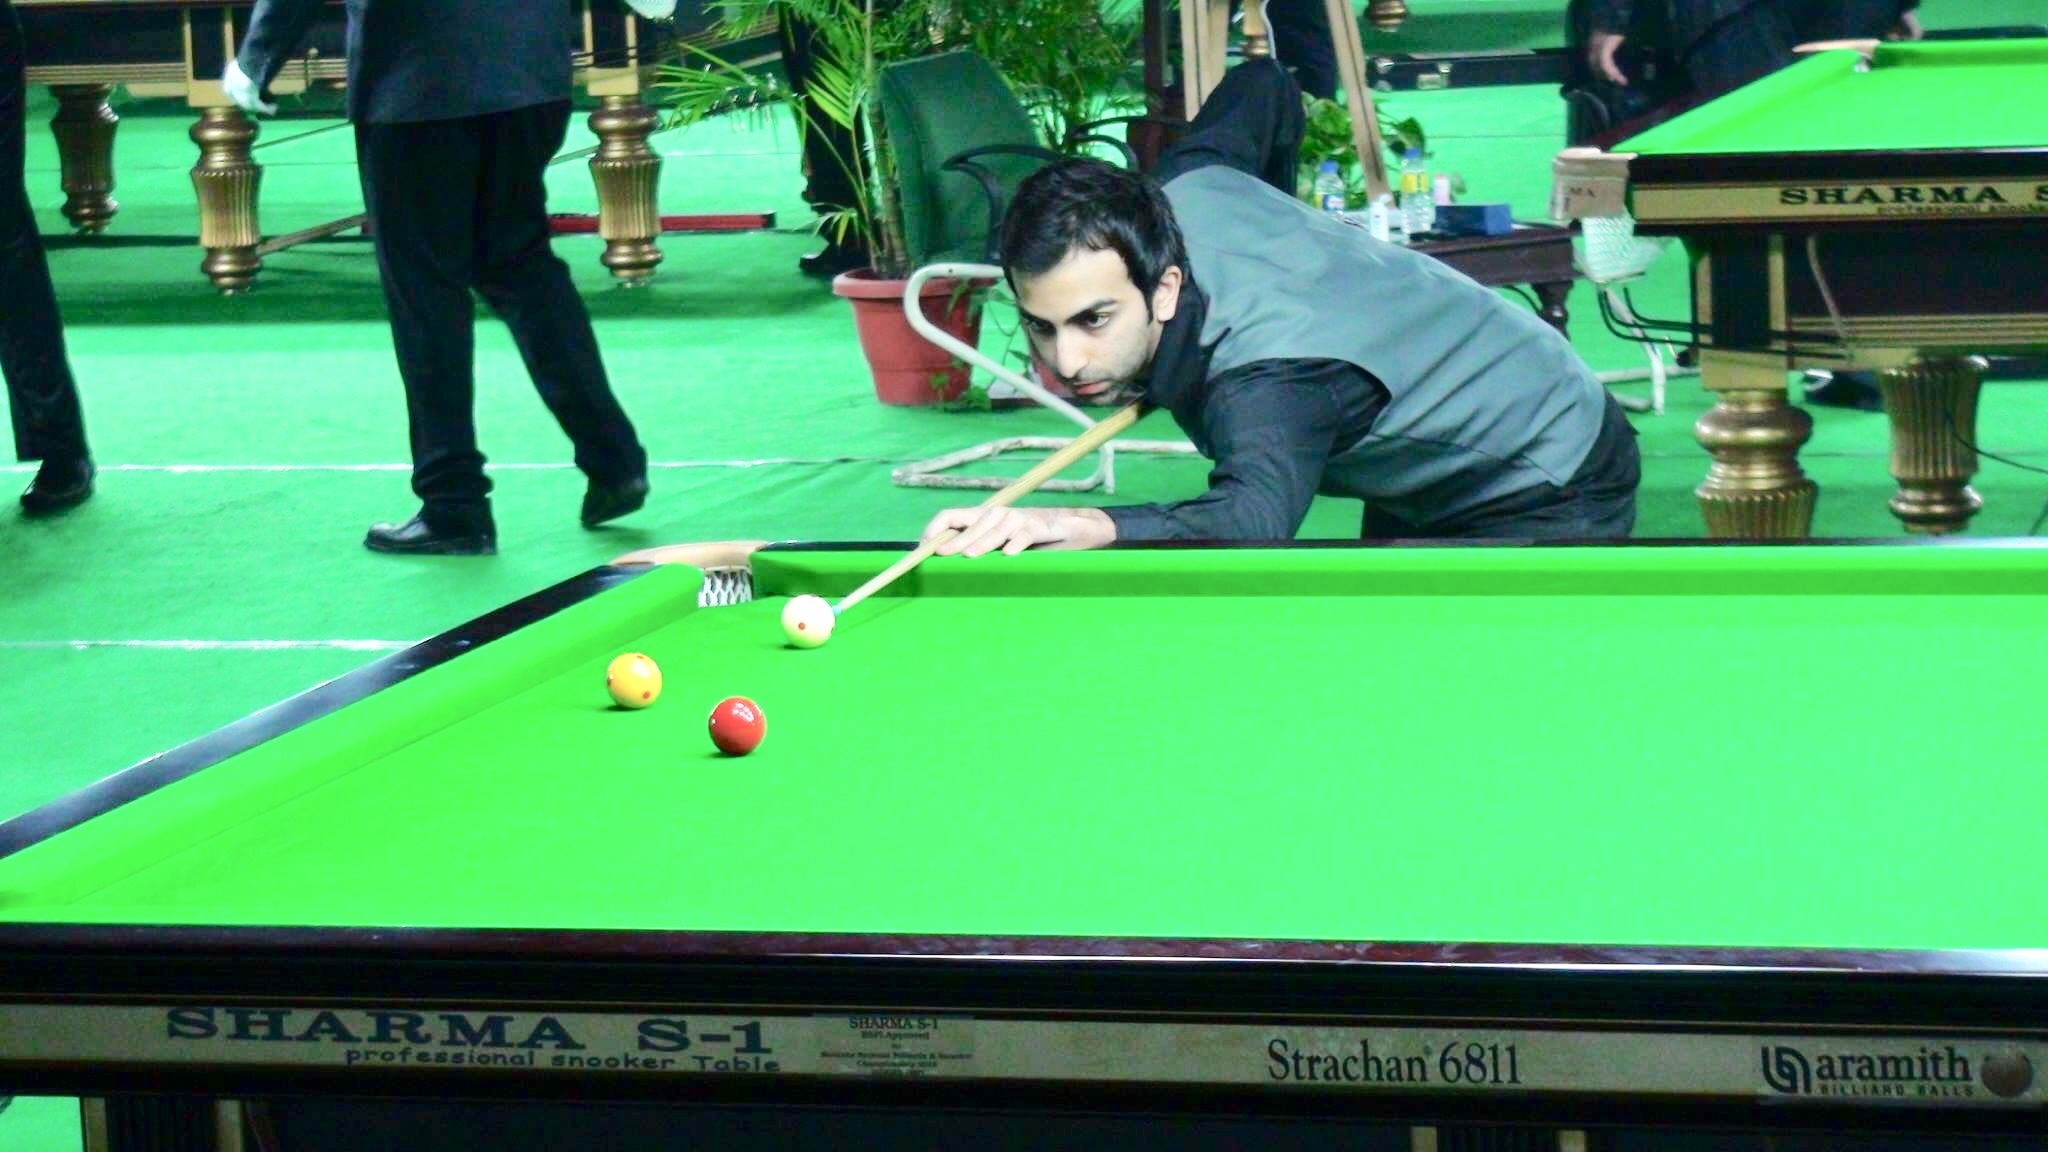 Tournament Snooker Table